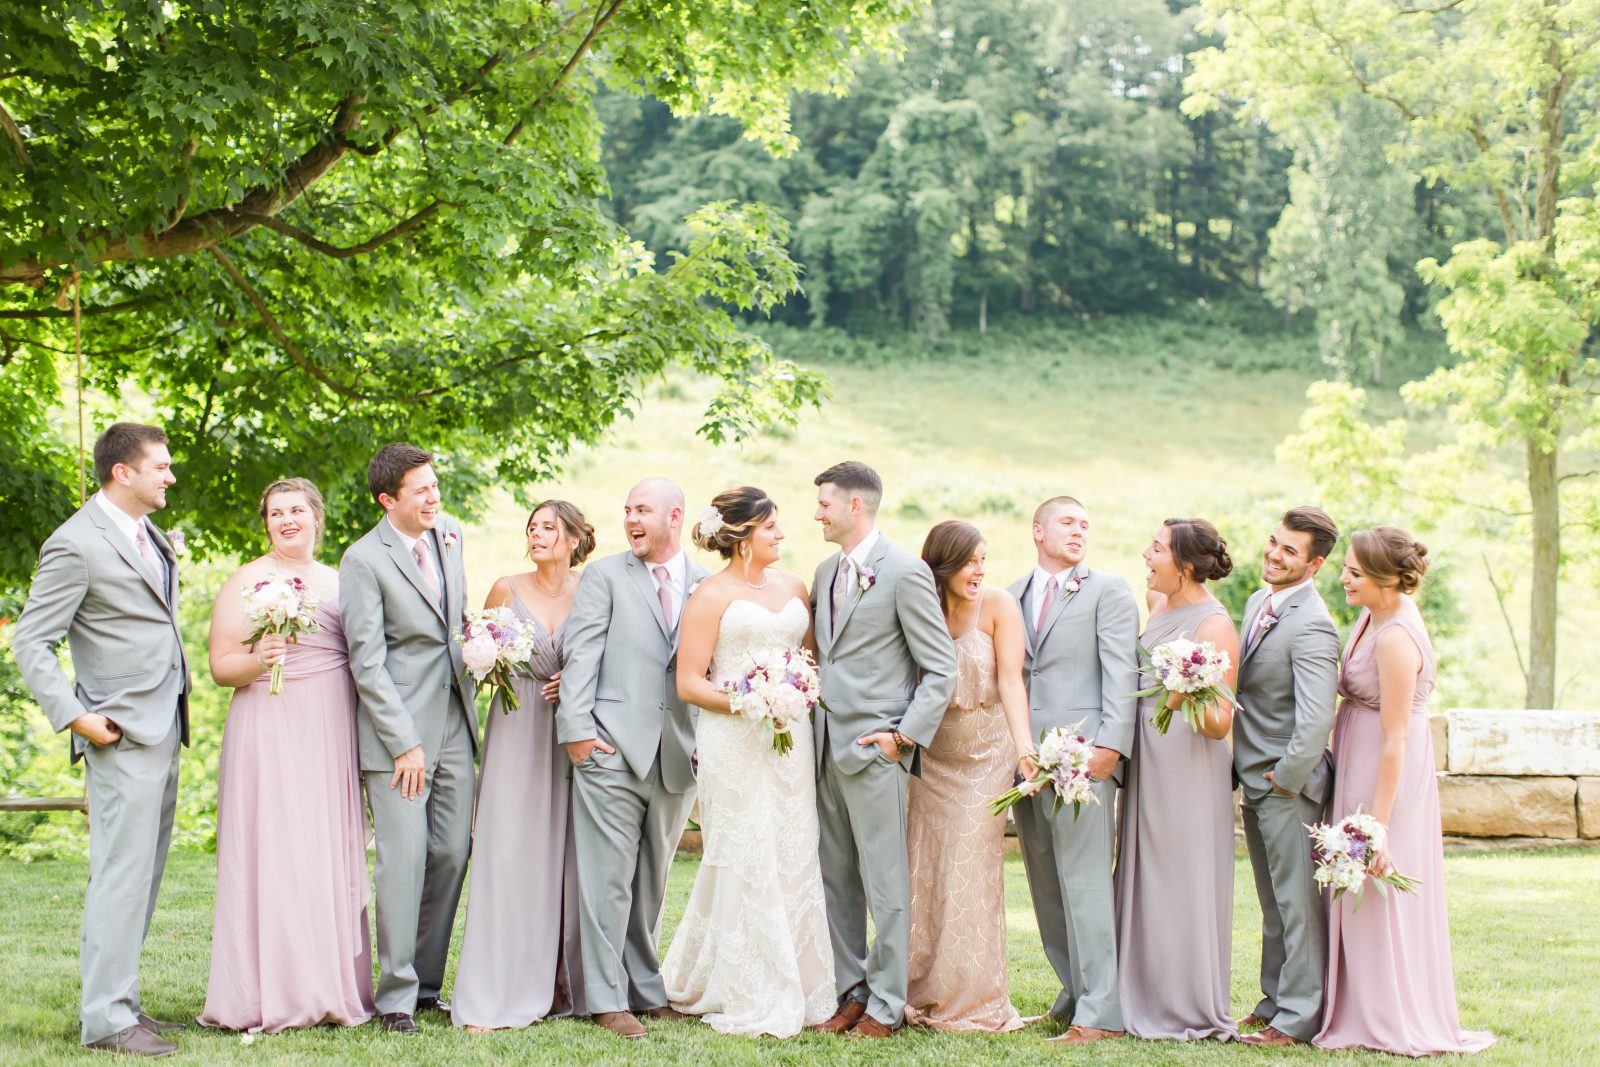 rivercrest-farm-summer-wedding-loren-jackson-photography-56